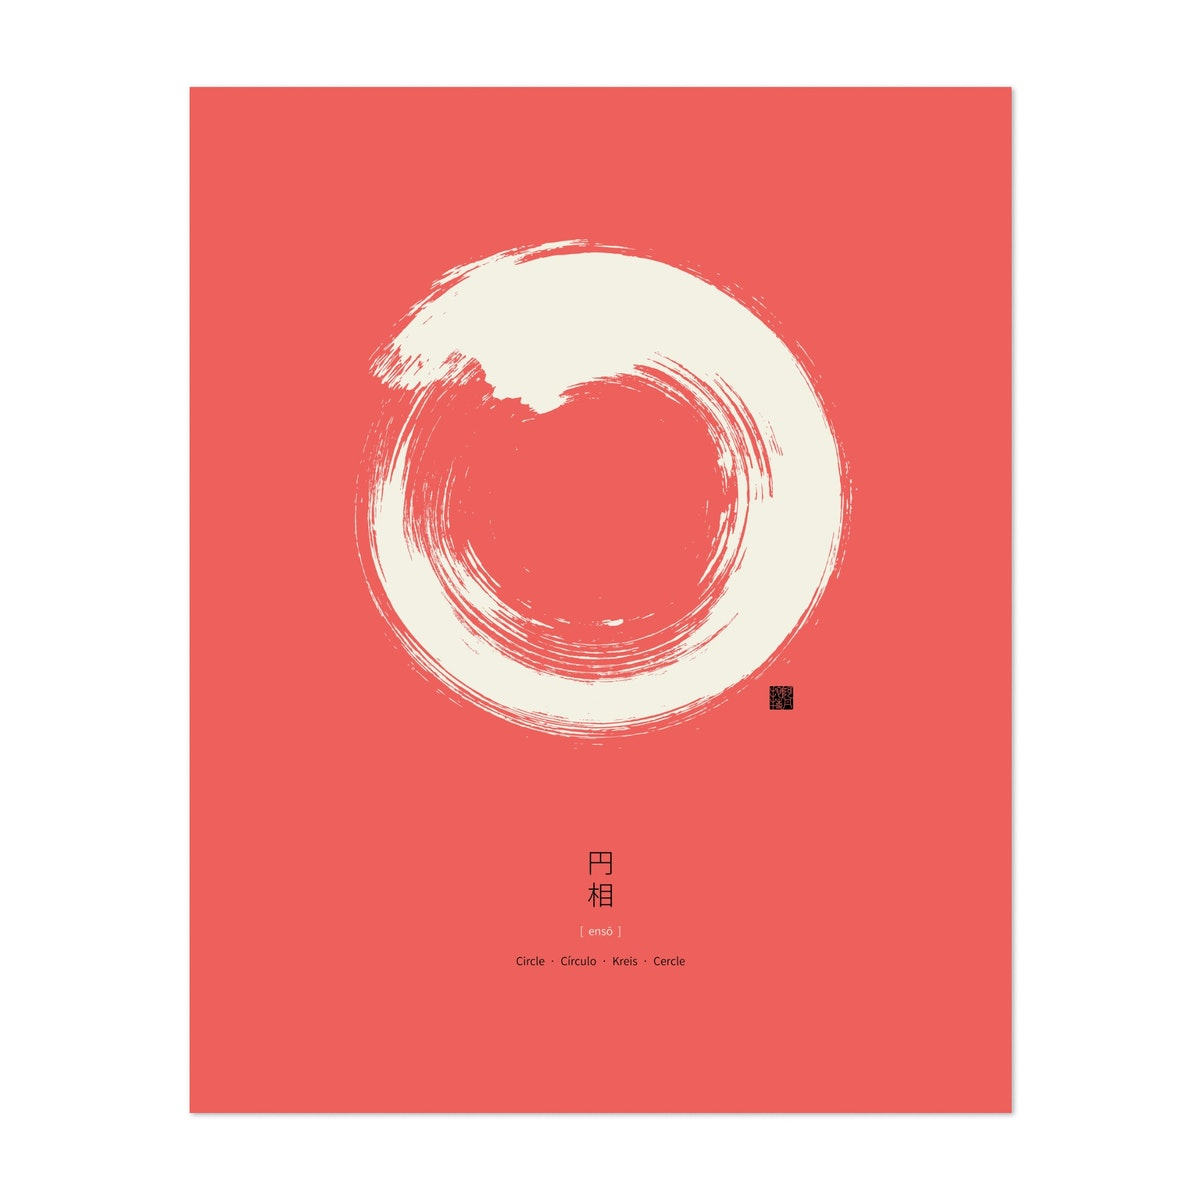 Enso on red background